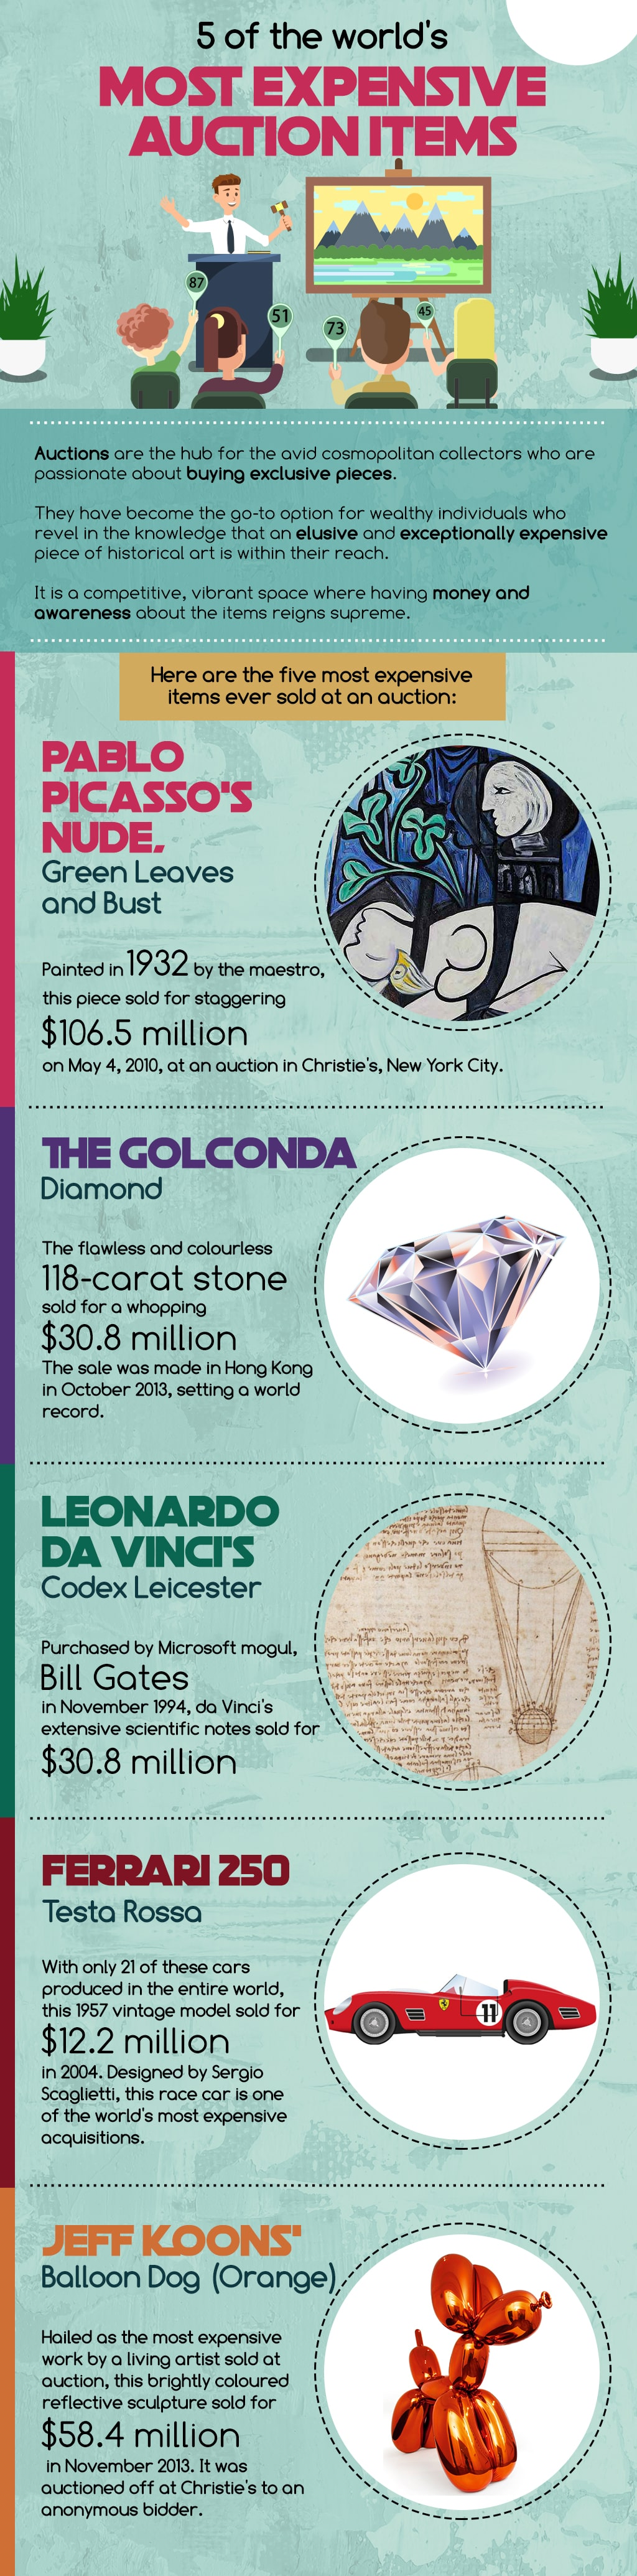 5 of the world's most expensive auction items